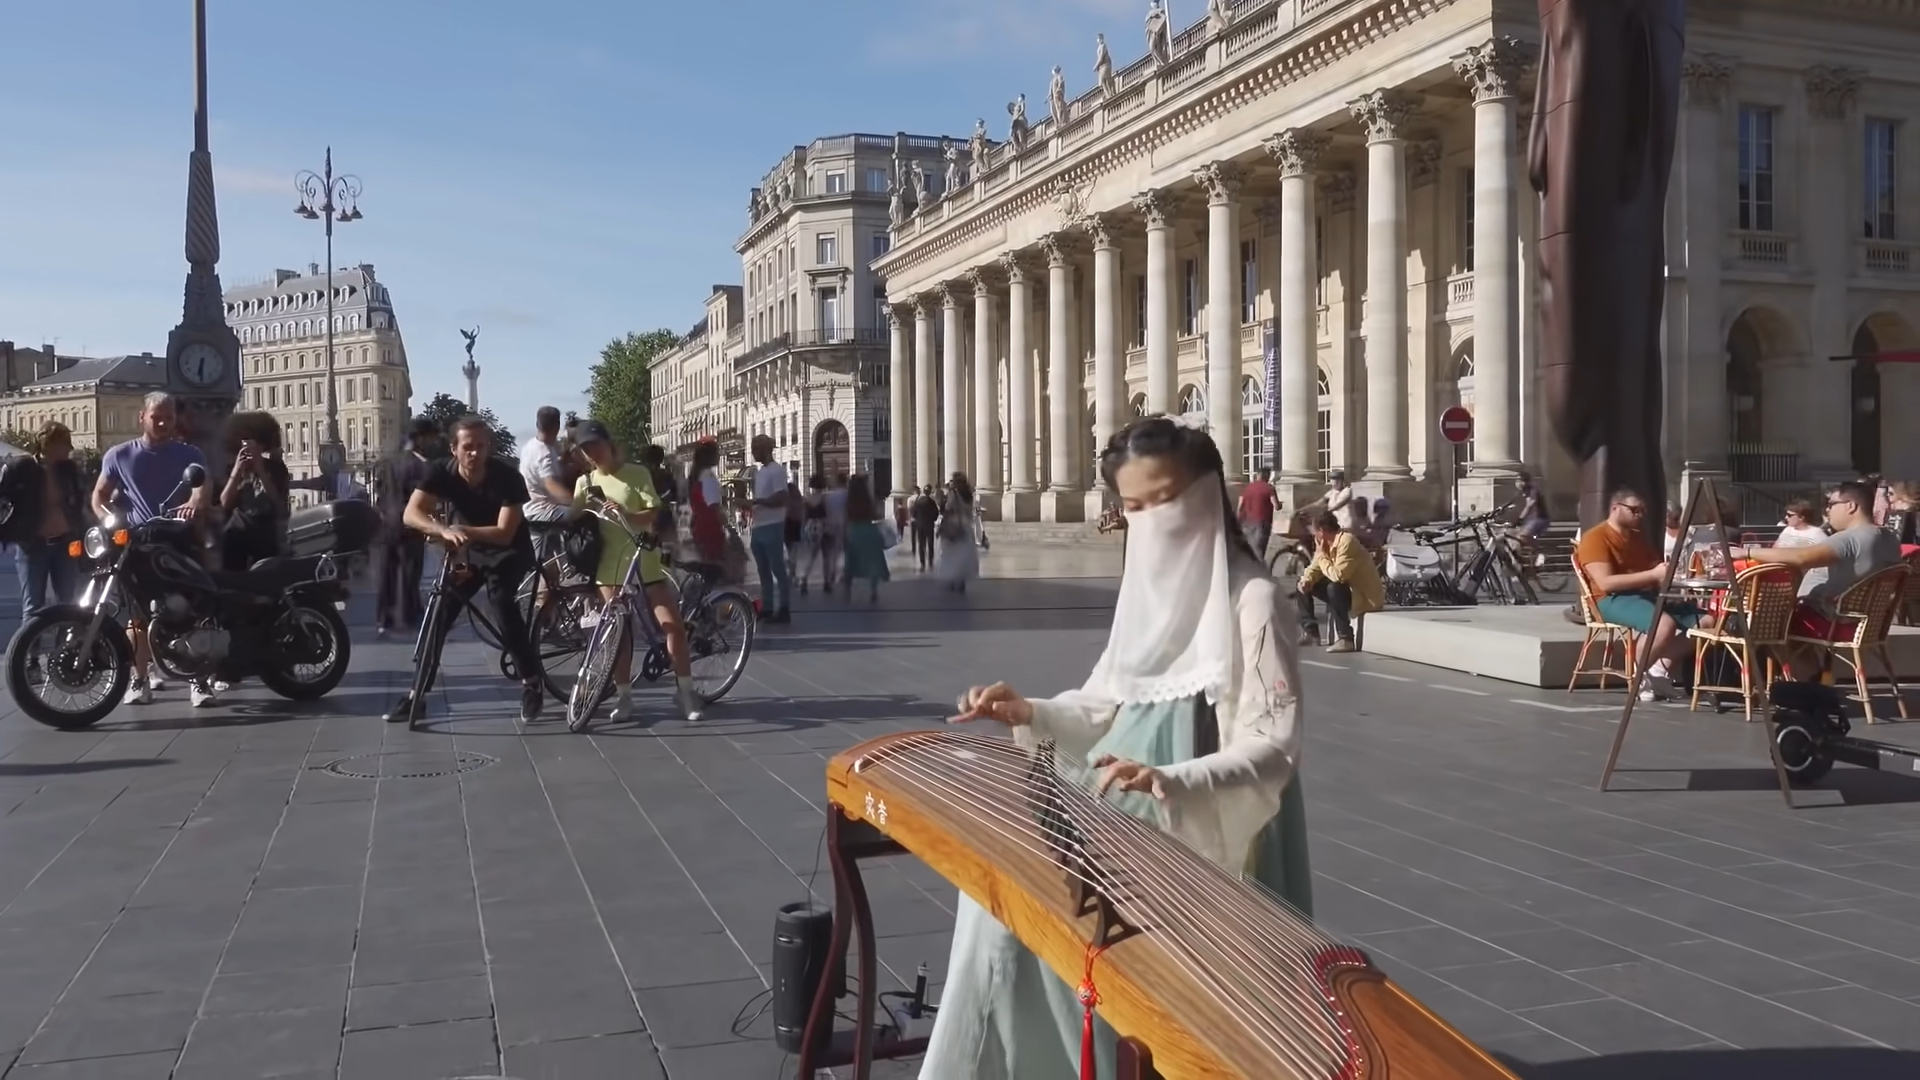 Screenshot of Peng Jingxuan's video on YouTube, in which she performs the Chinese Song Yi Jian Mei on the guzheng, a traditional music instrument, on the streets in France.